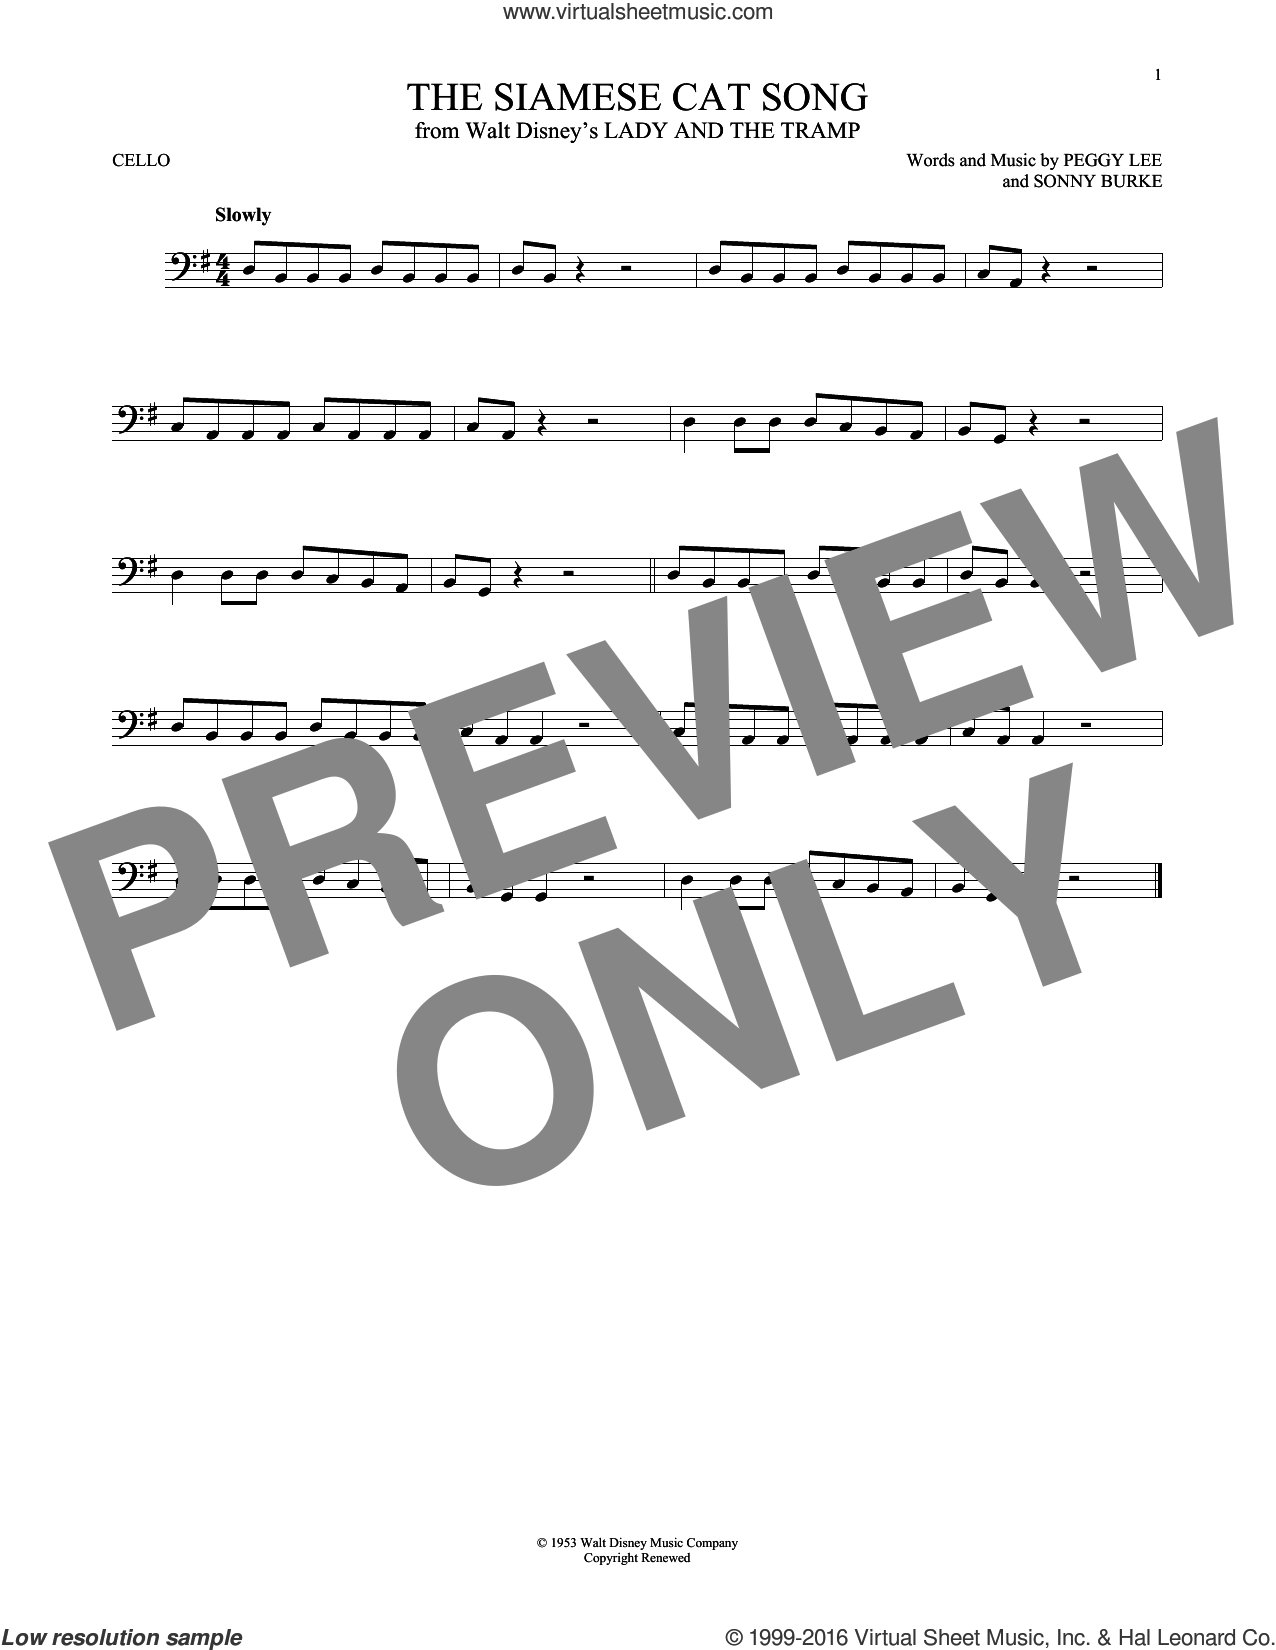 The Siamese Cat Song (from Lady And The Tramp) sheet music for cello solo by Peggy Lee, Peggy Lee & Sonny Burke and Sonny Burke, intermediate skill level